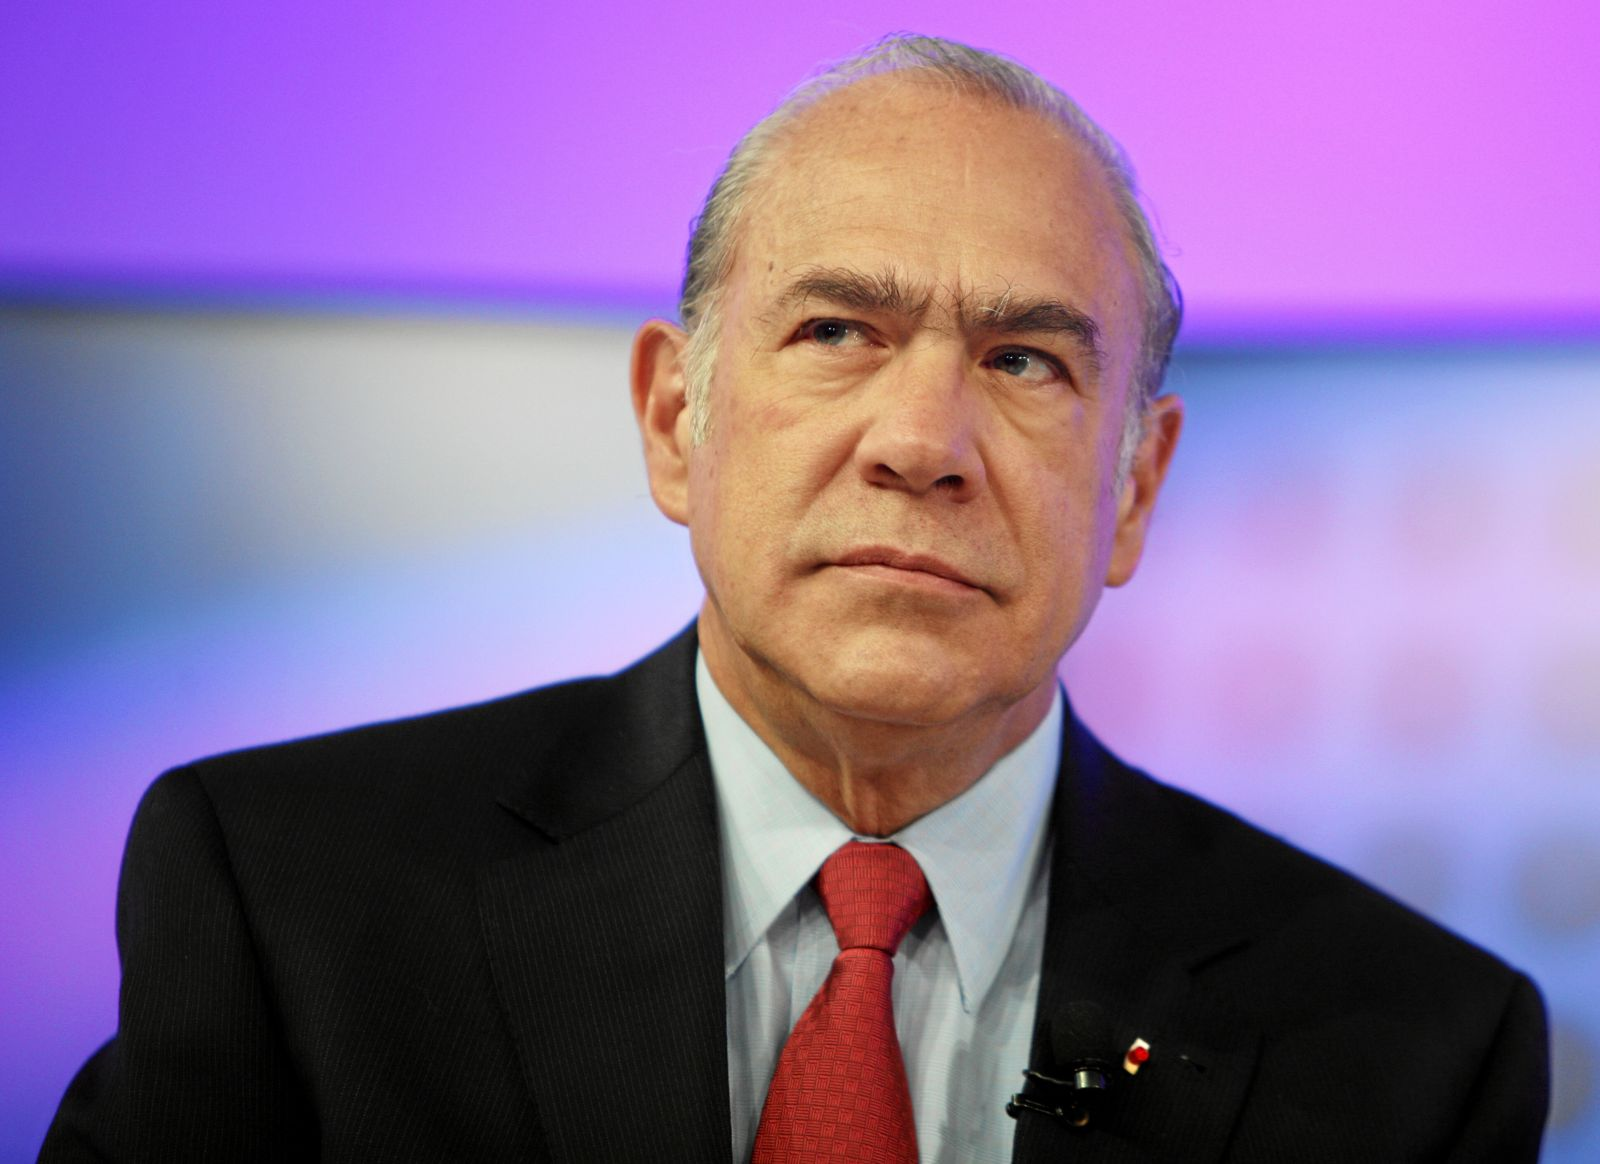 Angel_Gurria_-_World_Economic_Forum_Annual_Meeting_2012.jpg